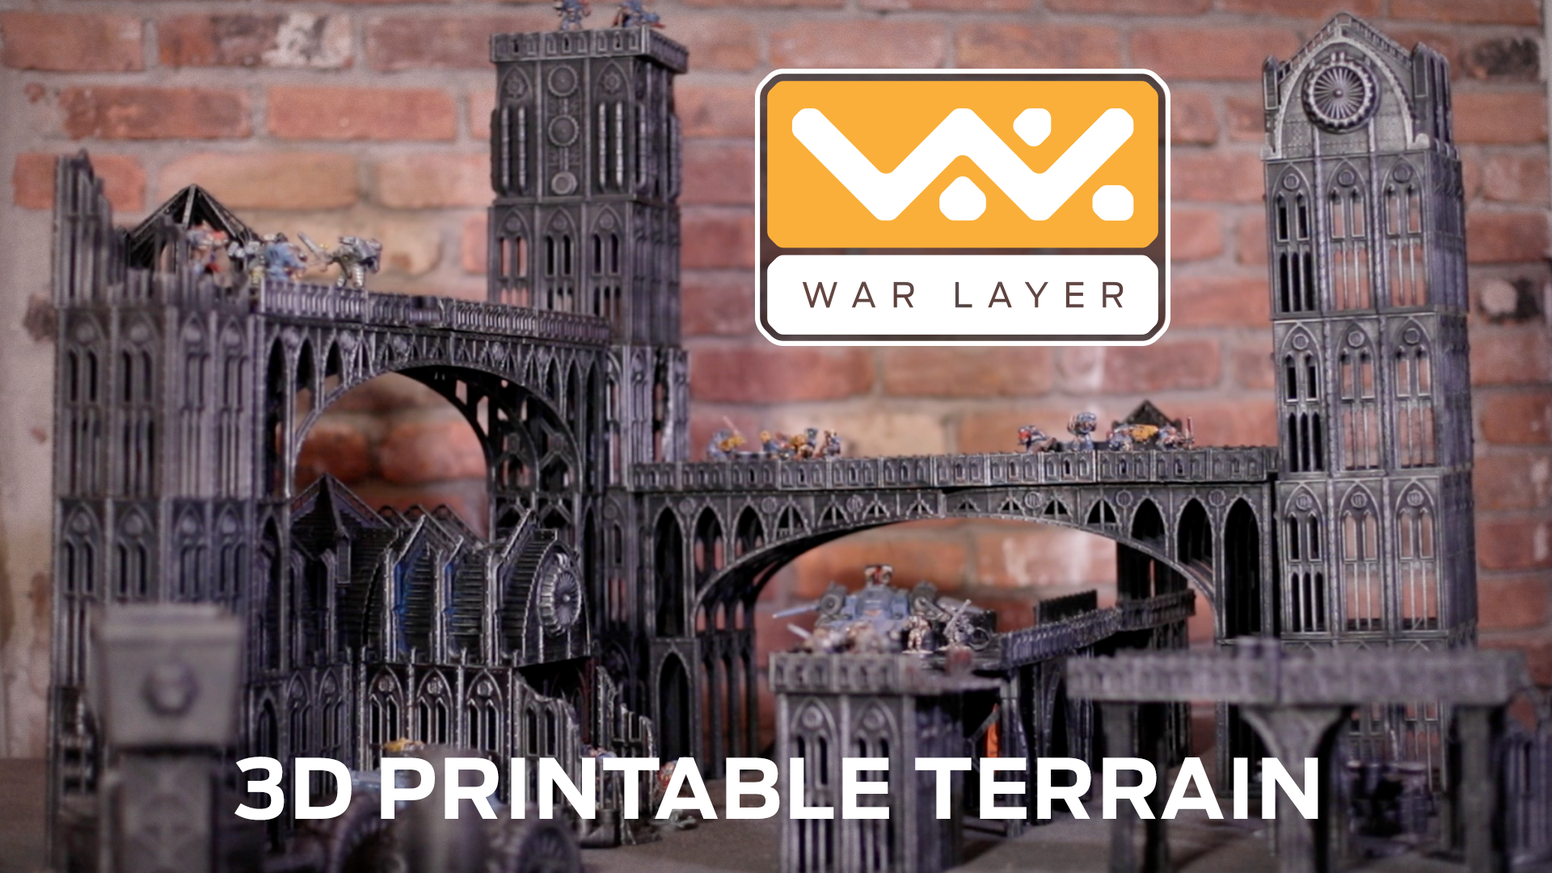 3D Printable Gothic City War-Zone. Wargaming terrain guaranteed to print without supports. Print, Paint and Play.